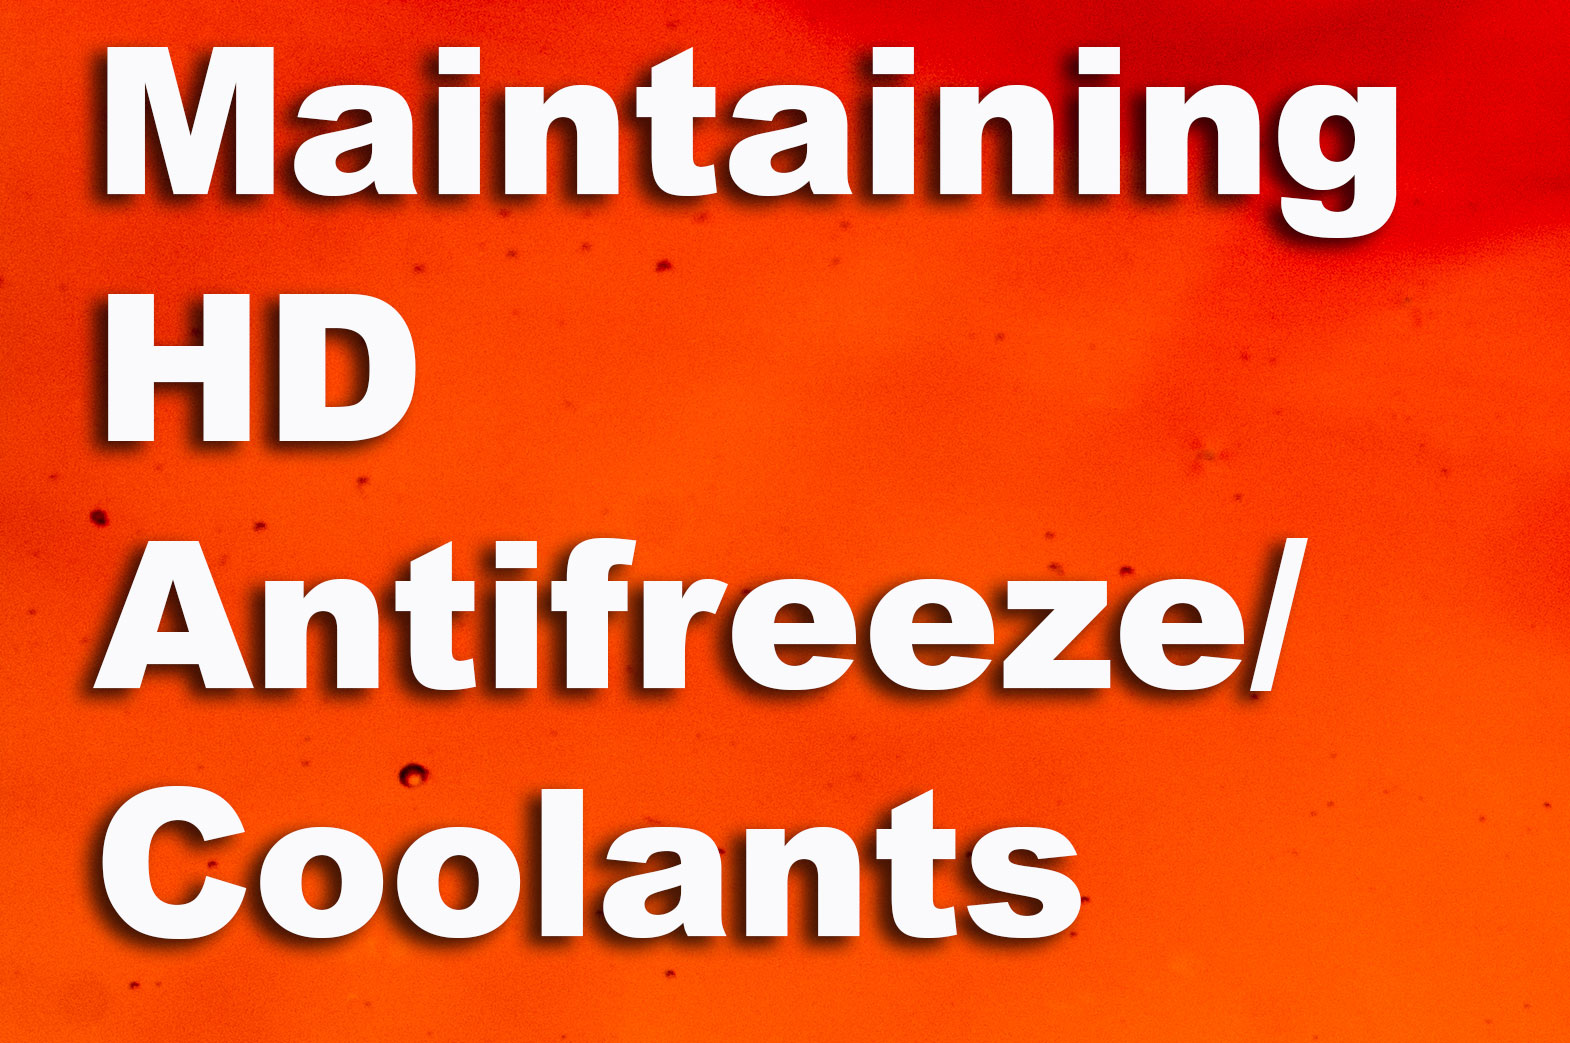 Maintaining HD Antifreeze/Coolants